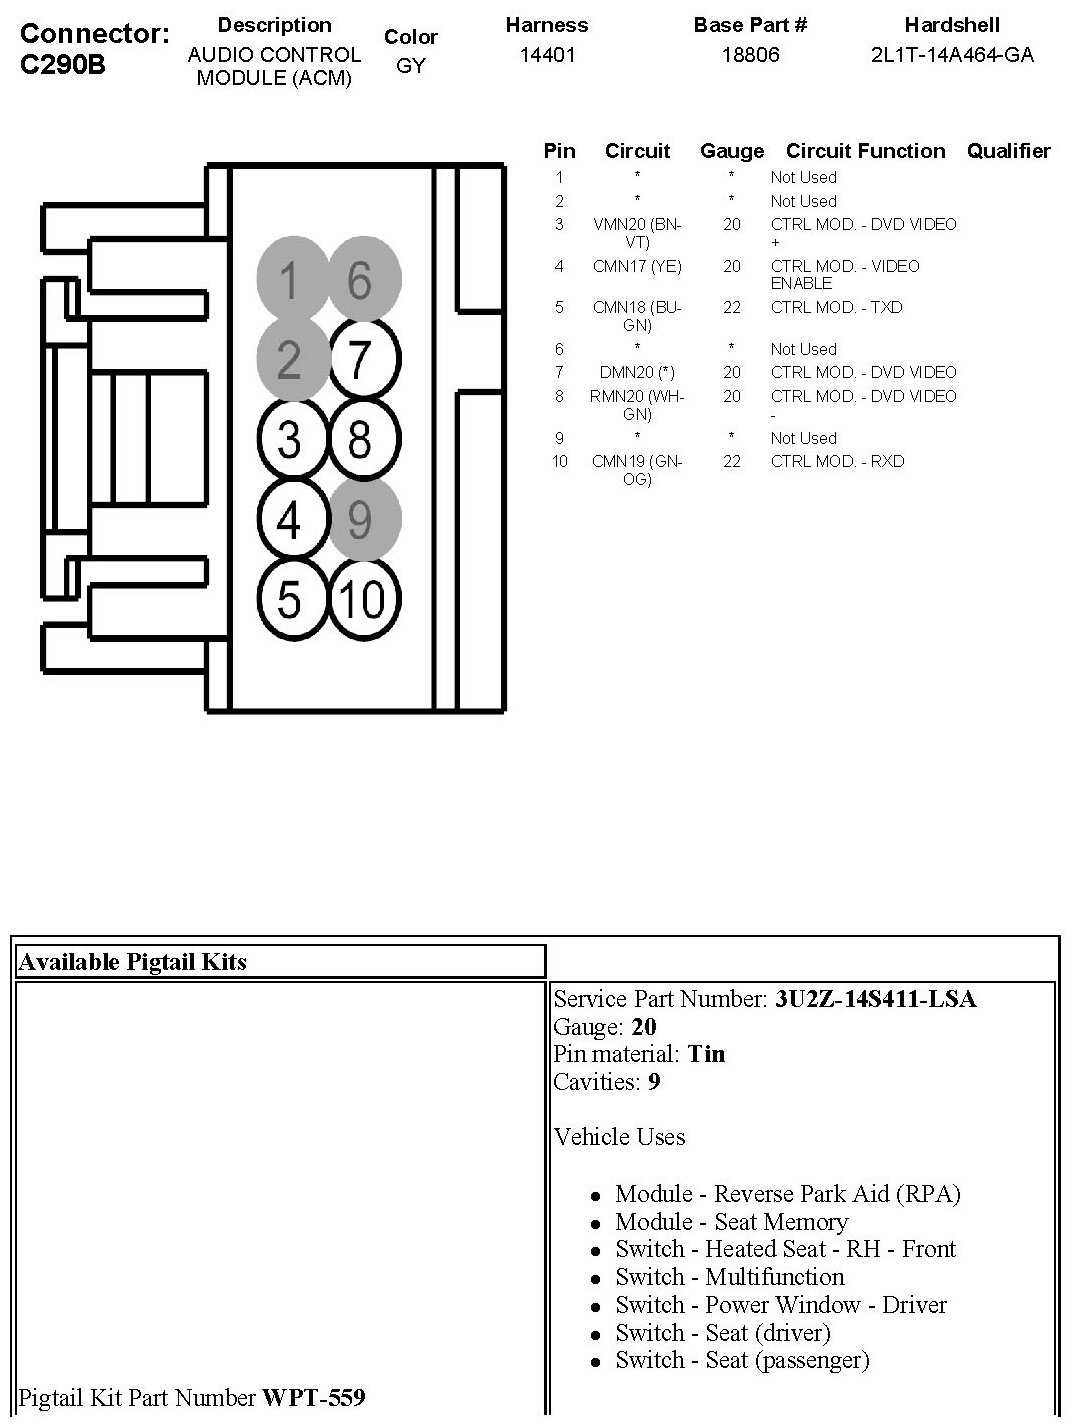 2010 f150 wiring diagram 24 16 pin connectors my truck harness full size image